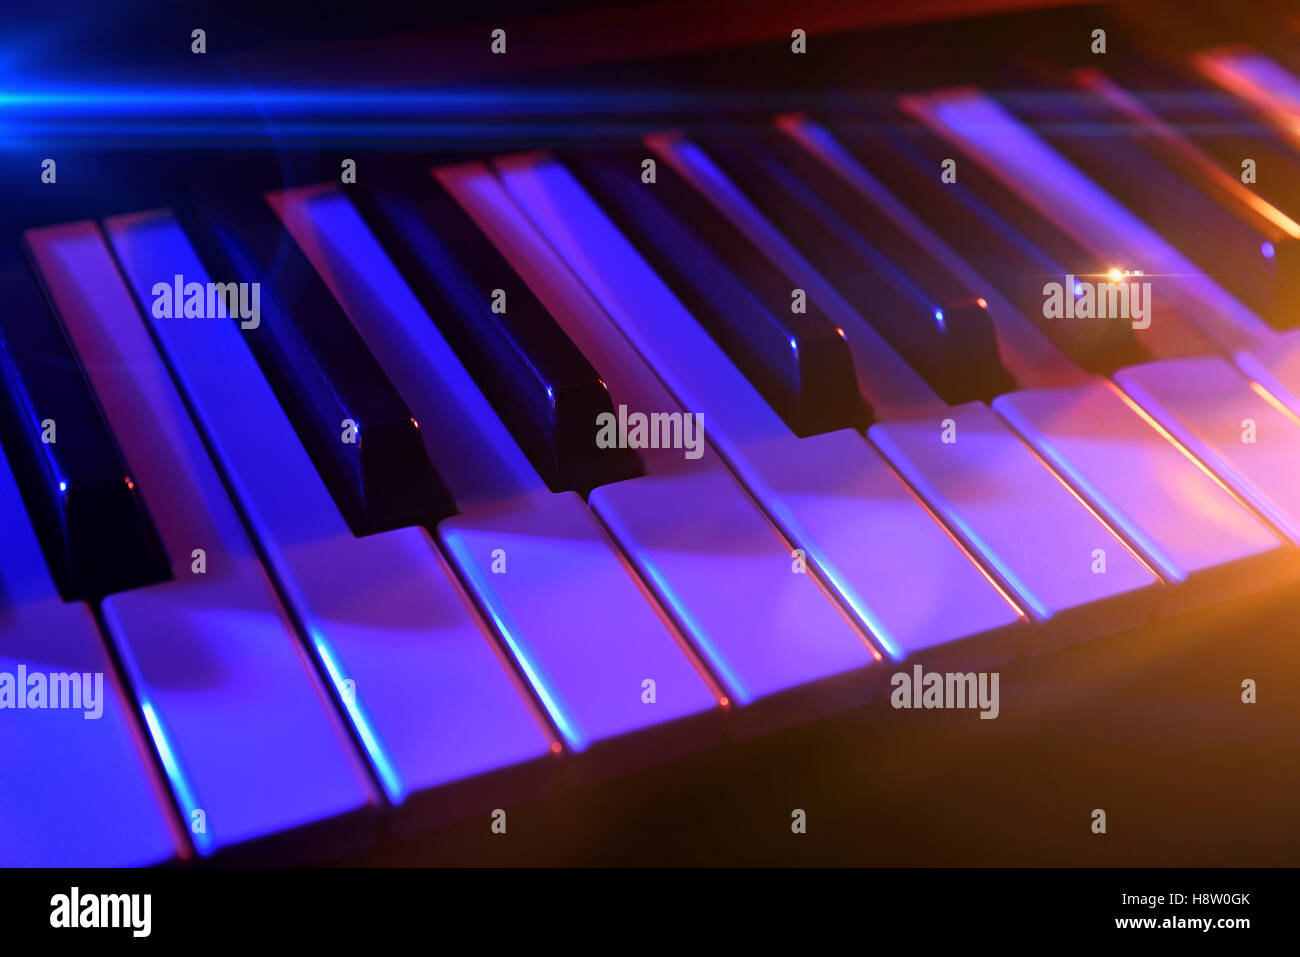 Keyboard synthesizer with colorful lights in concert. Horizontal composition. Elevated view - Stock Image